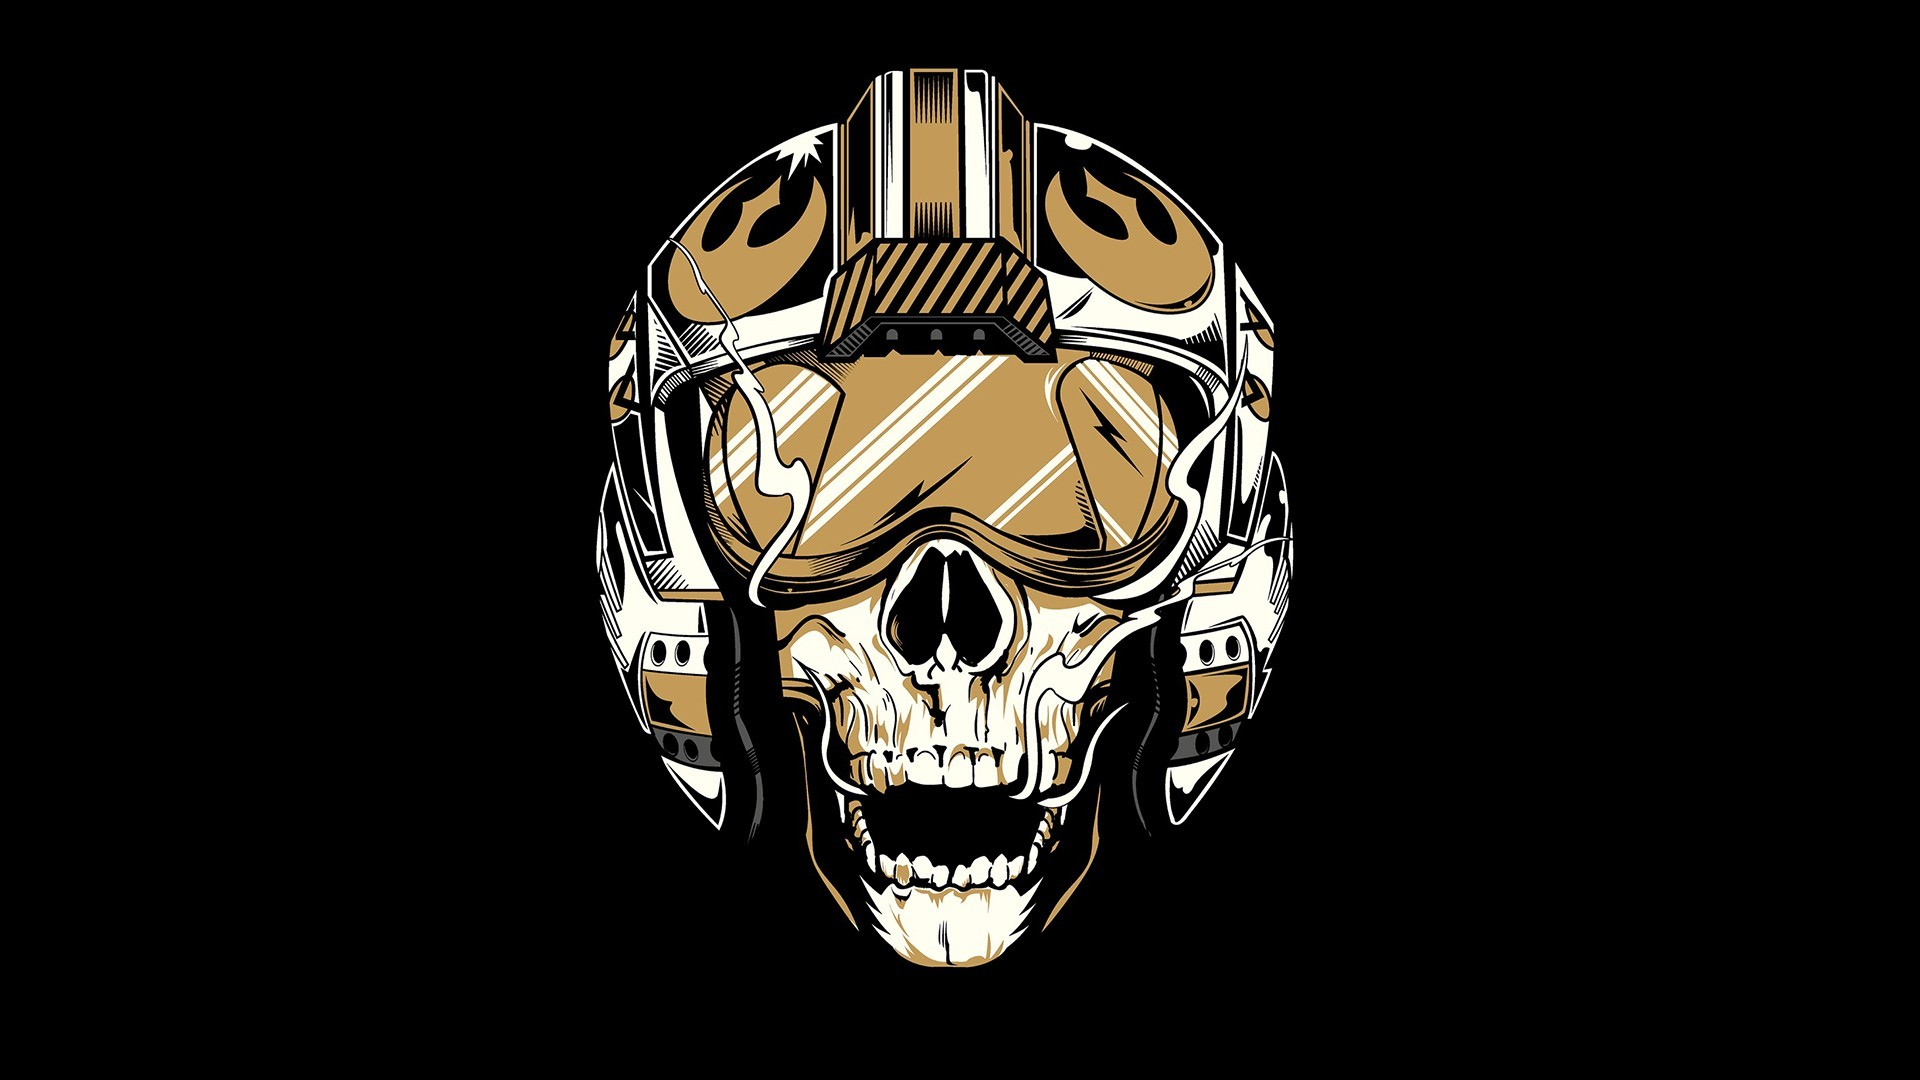 Awesome Star Wars Wallpaper